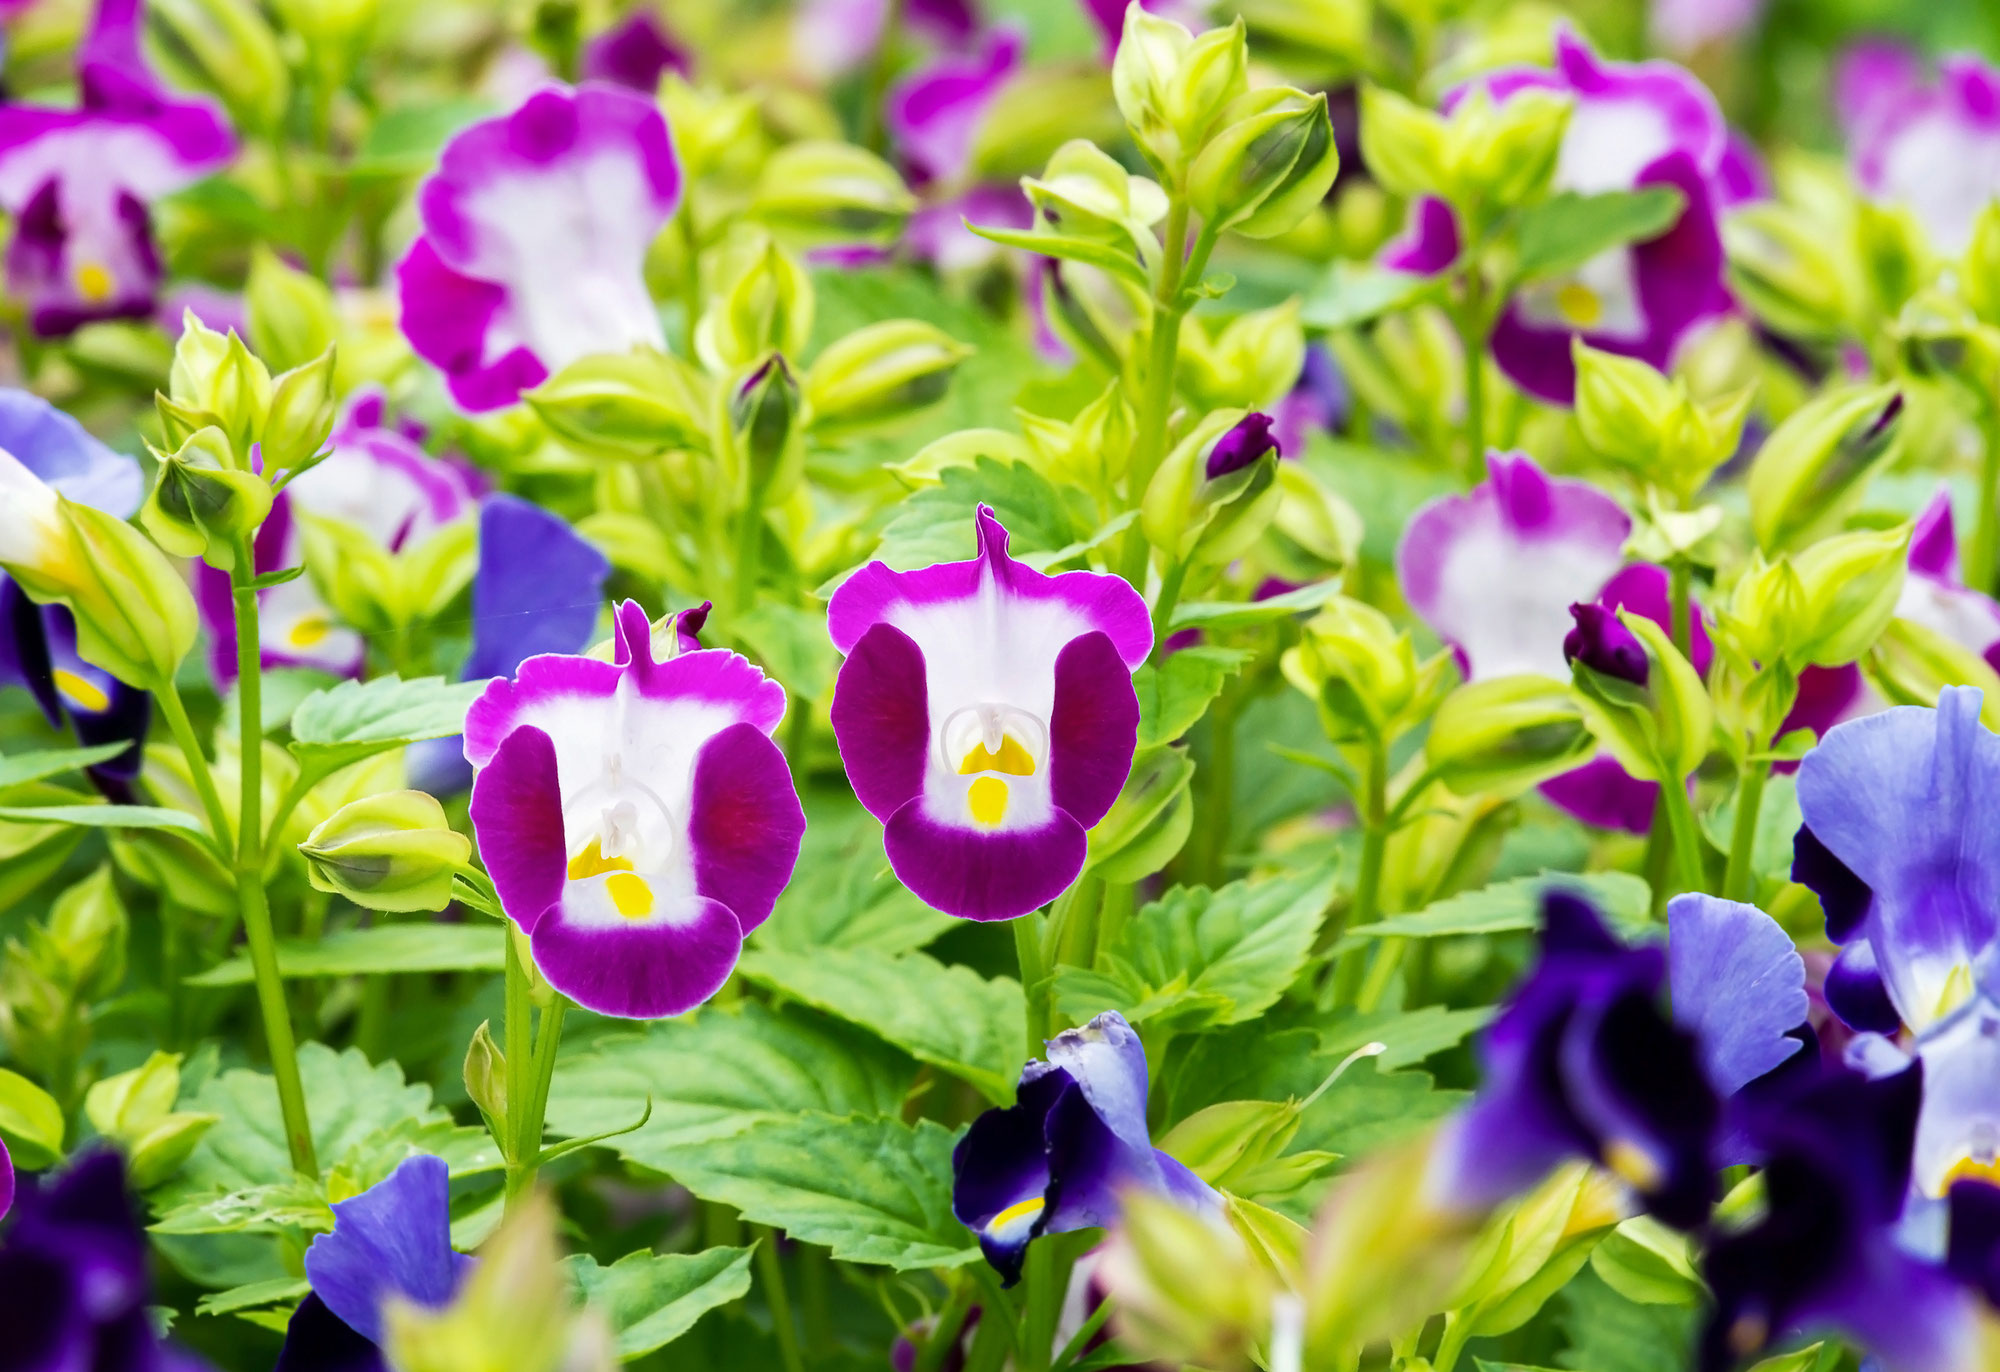 Torenia fournieri: the colorful flowers with long flowering